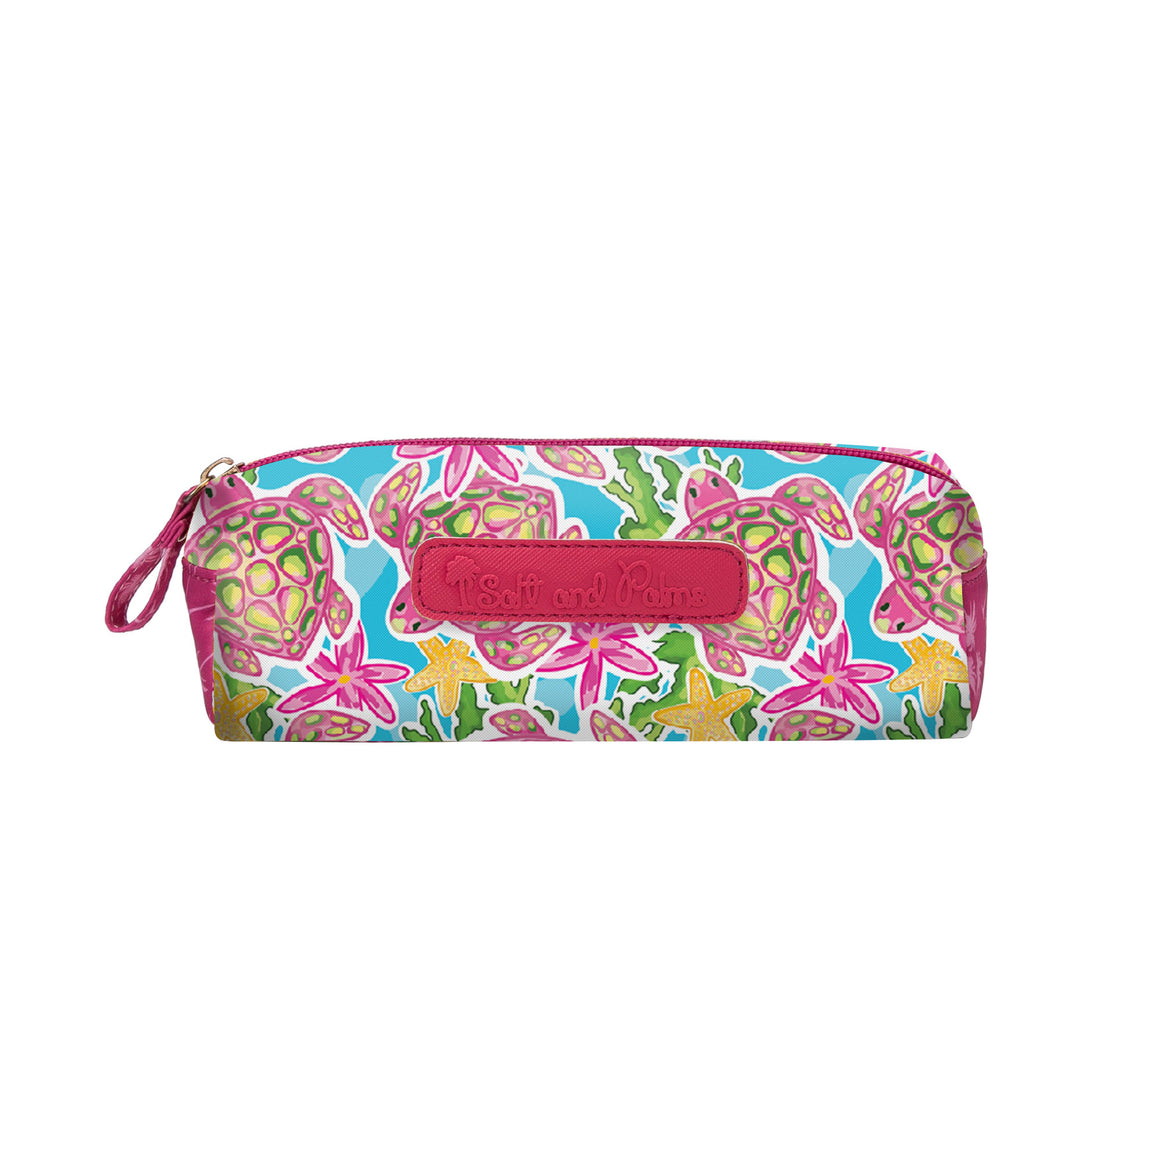 Salt & Palms Cosmetic Case - Sea Turtles